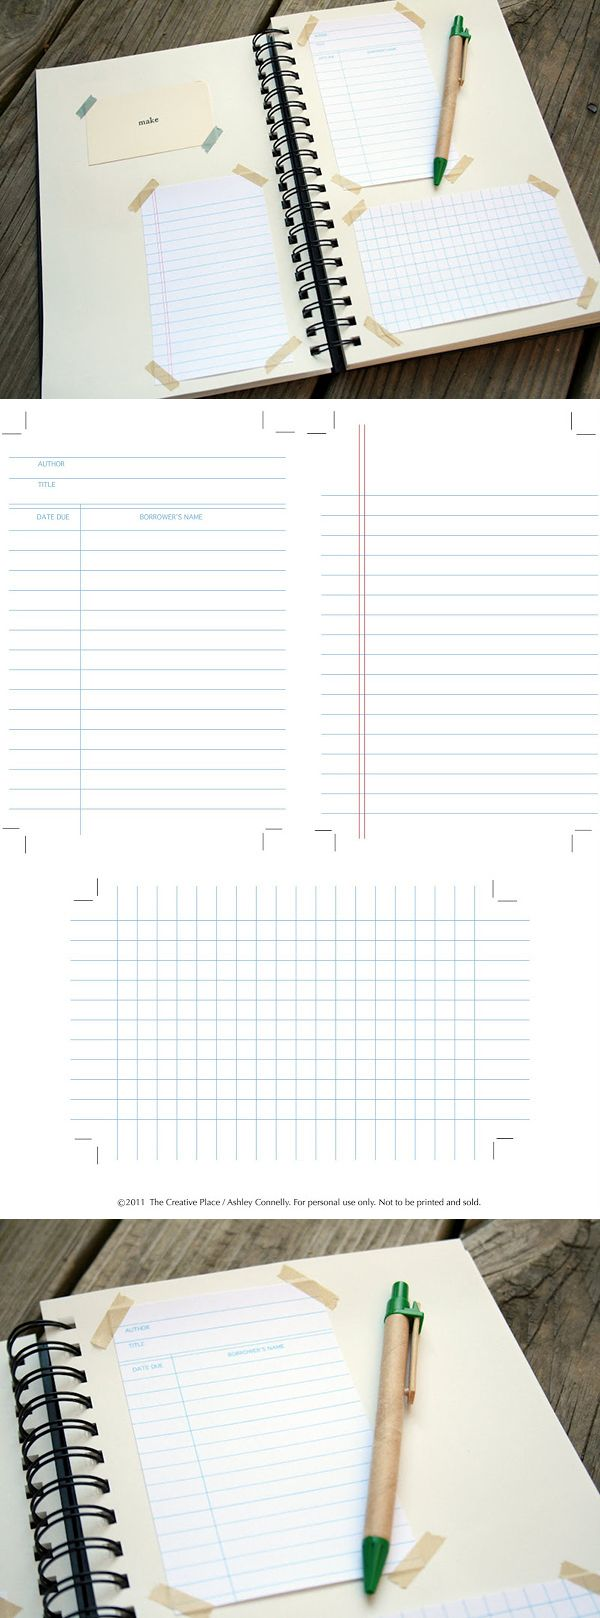 Scrapbook journaling ideas free - Free Printable Journal Cards Library Lined Graph Http Thecreativeplace